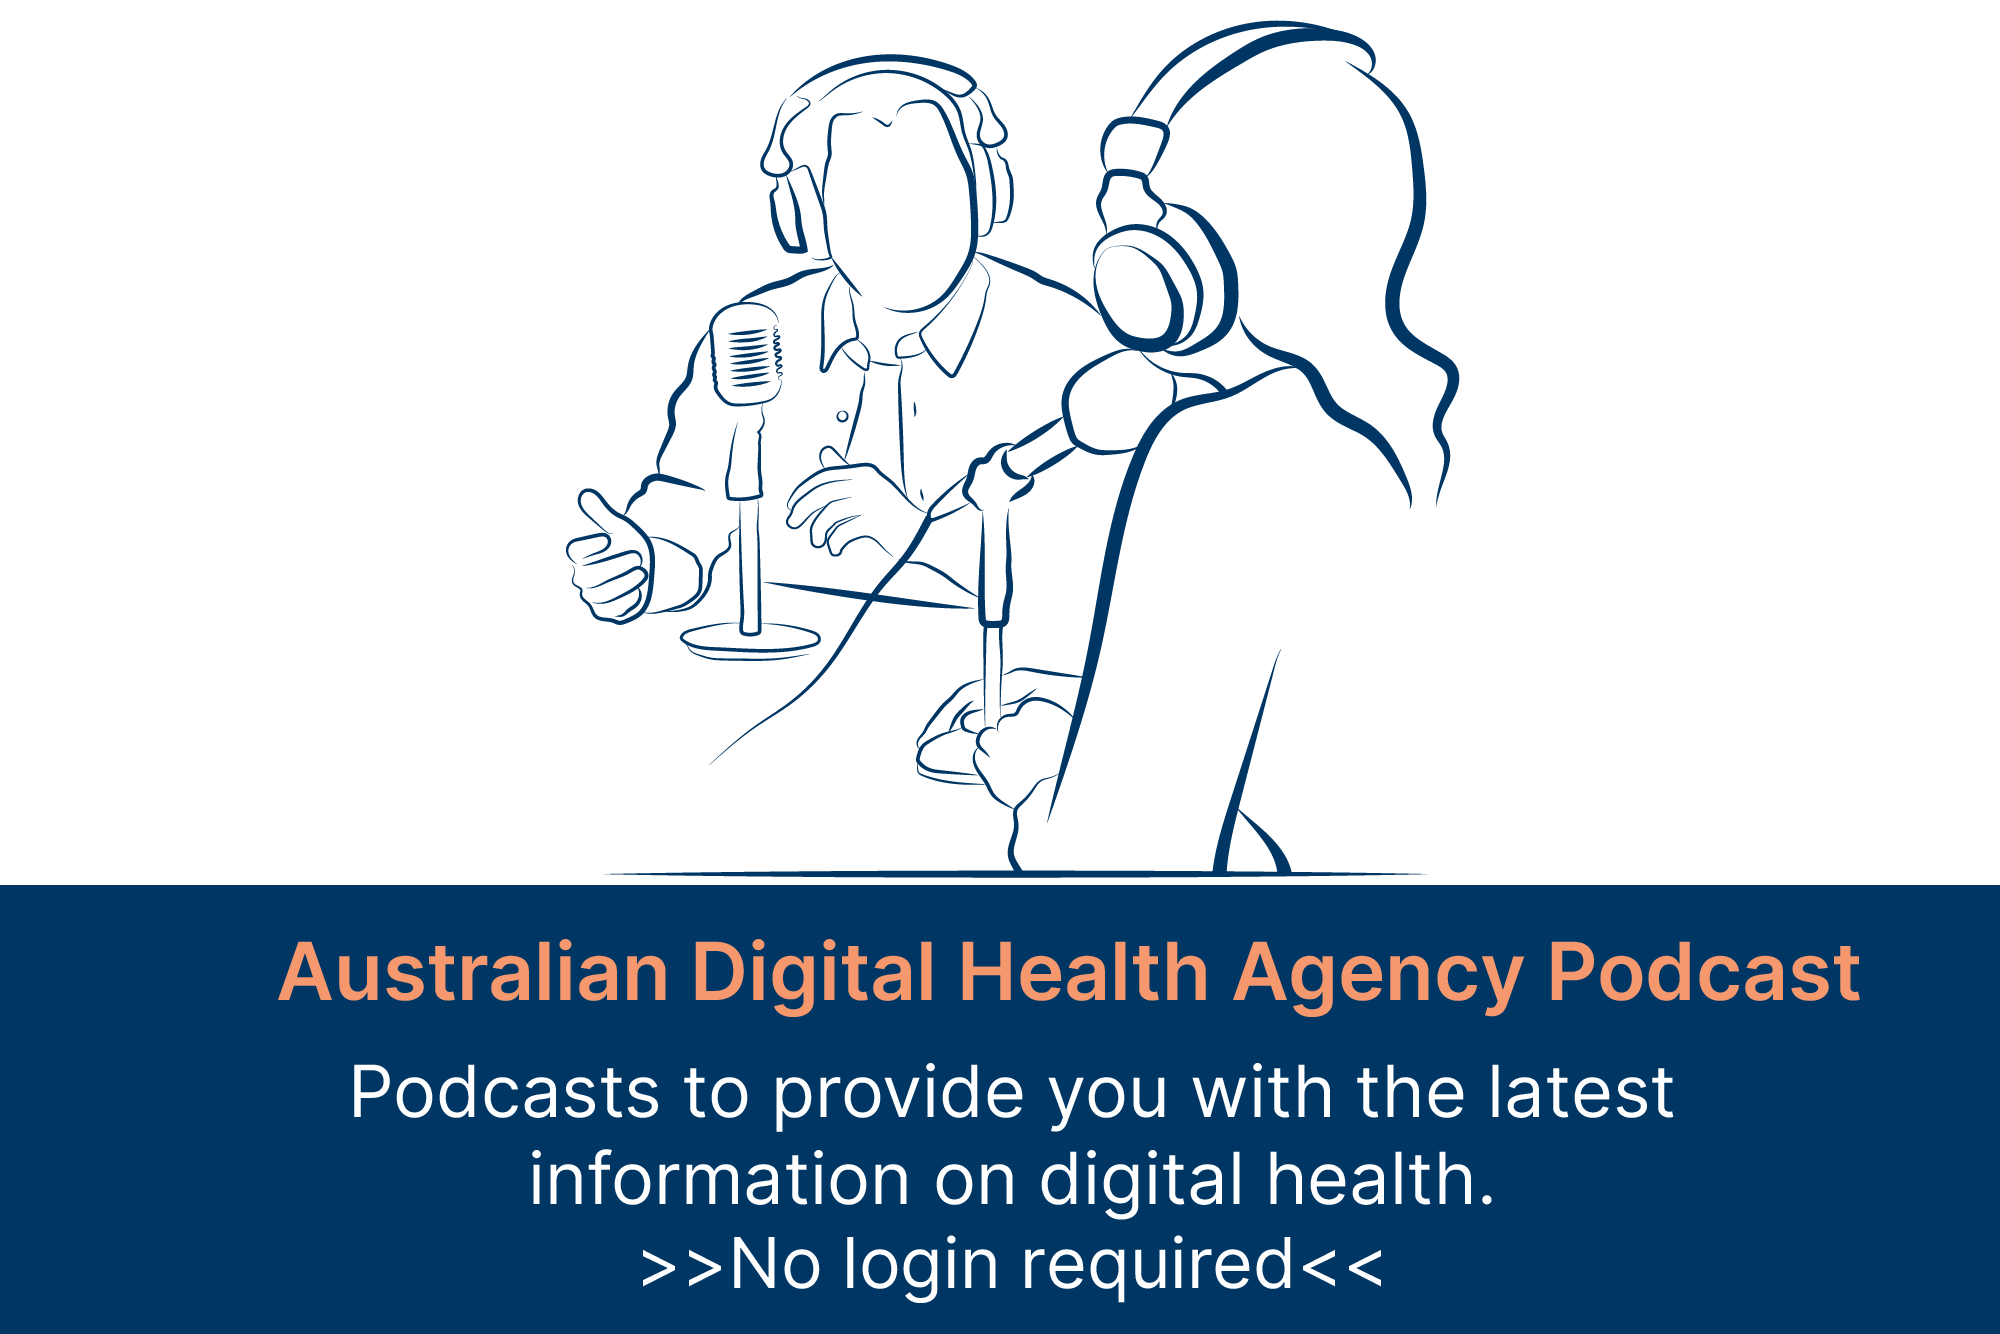 Australian Digital Health Podcast